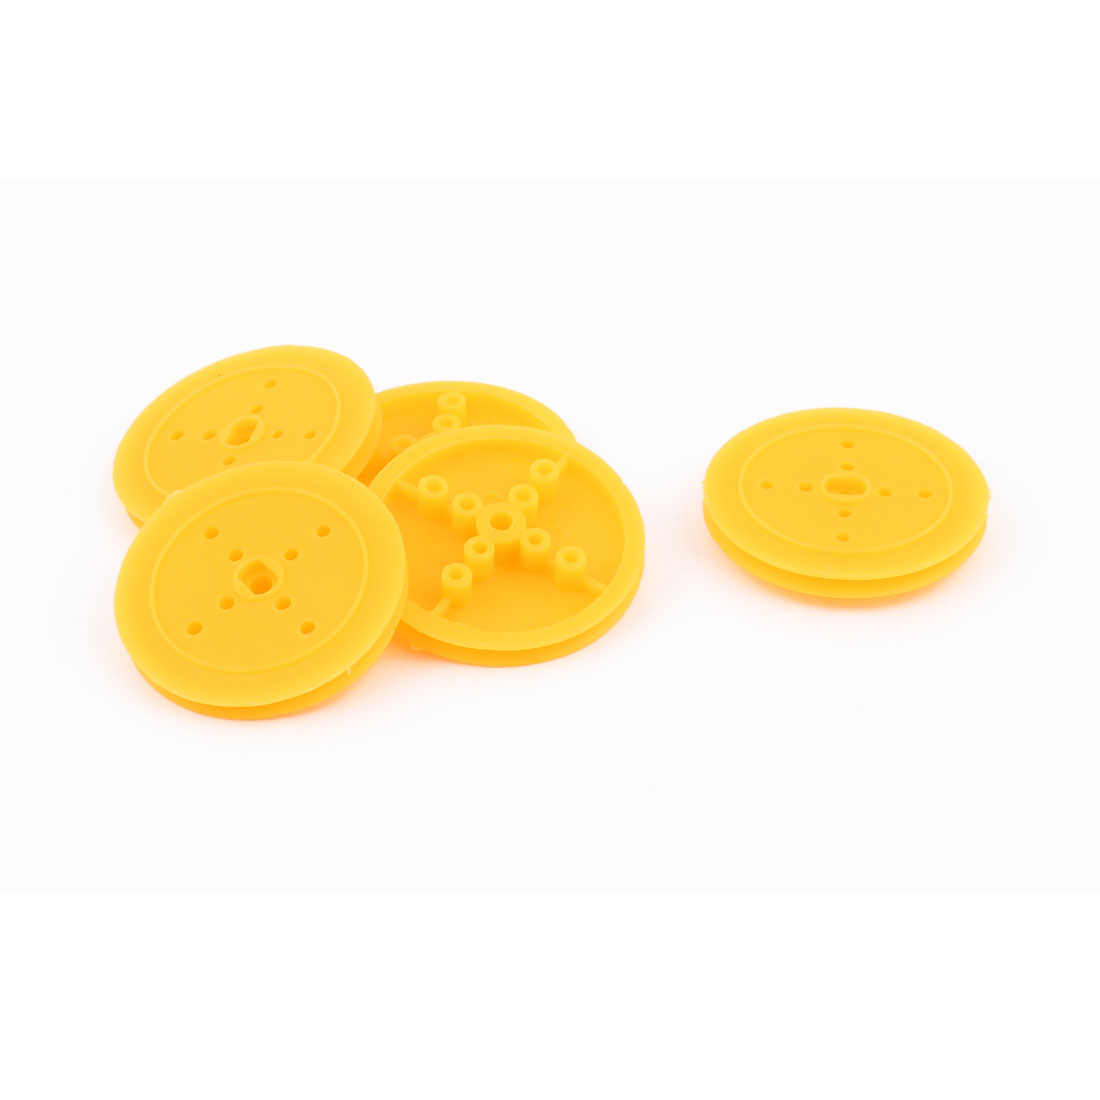 5 Pcs Plastic 36mm Diameter 4mm Thickness DIY Gear Band Pulley Yellow